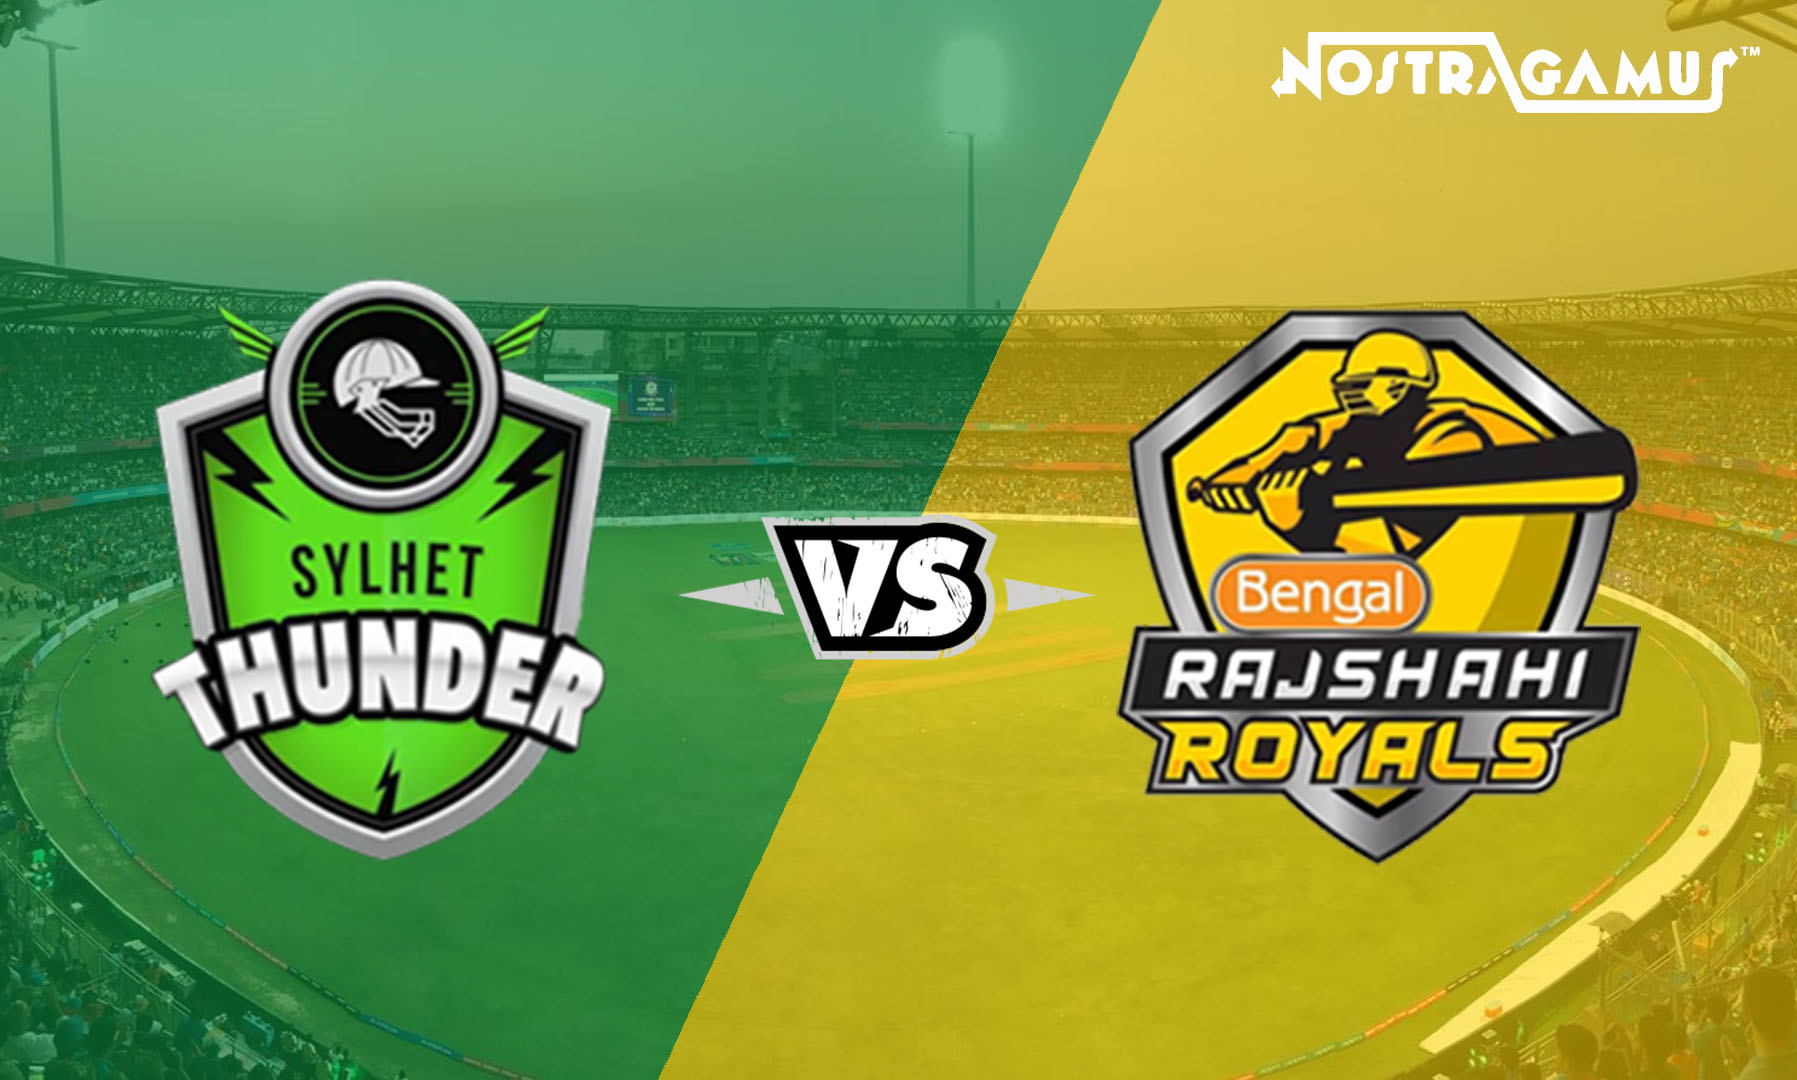 BPL 2019 Match Prediction: Sylhet Thunder vs Rajshahi Royals